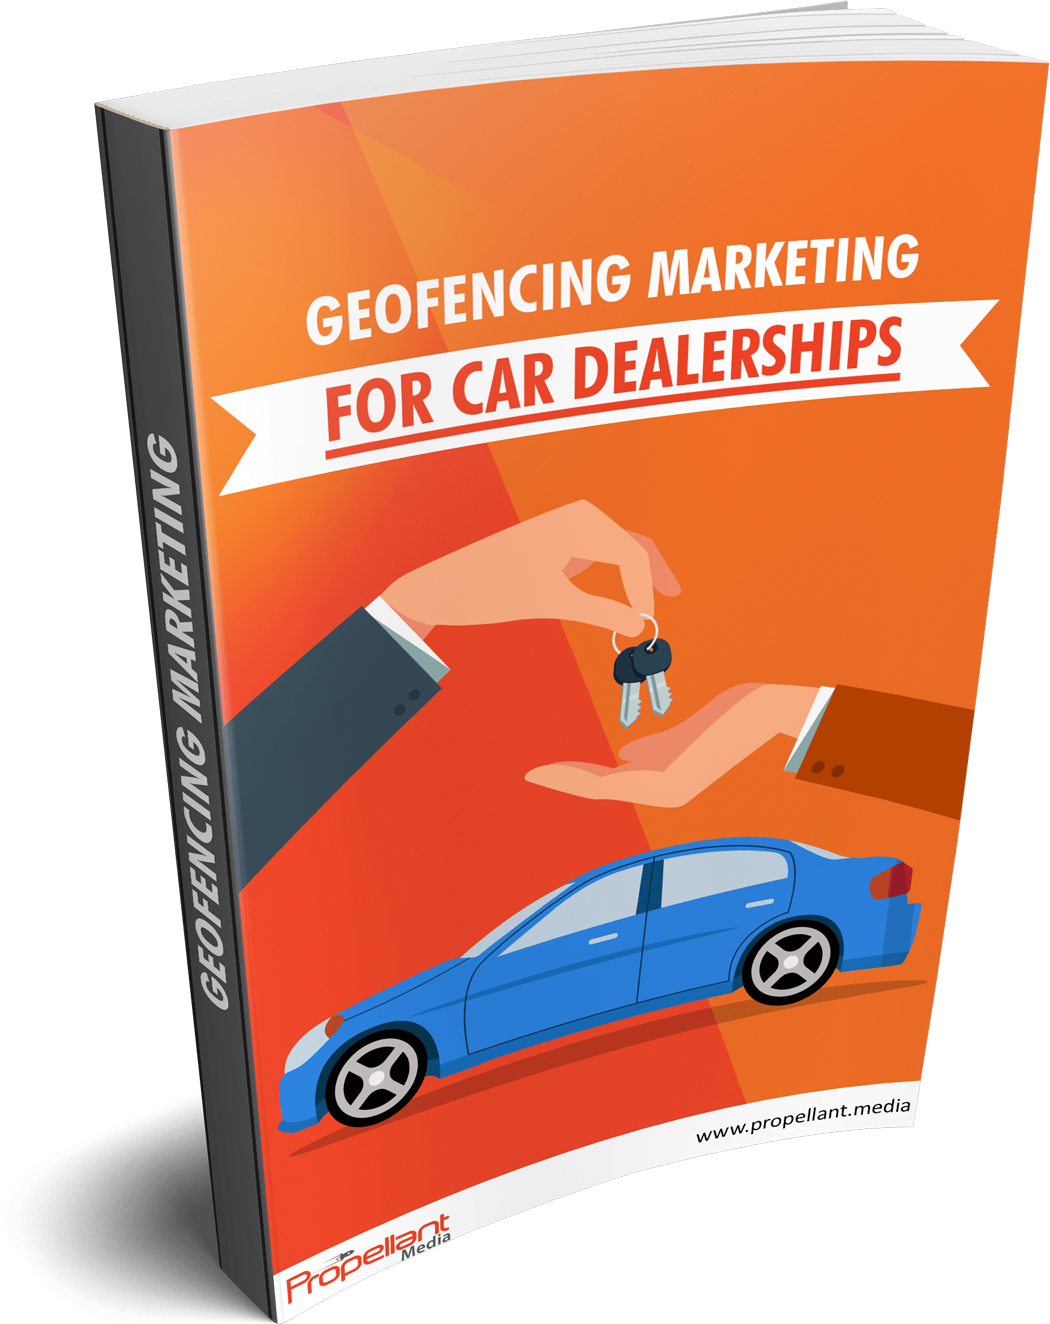 Guide To Geofencing Marketing For Car Dealerships